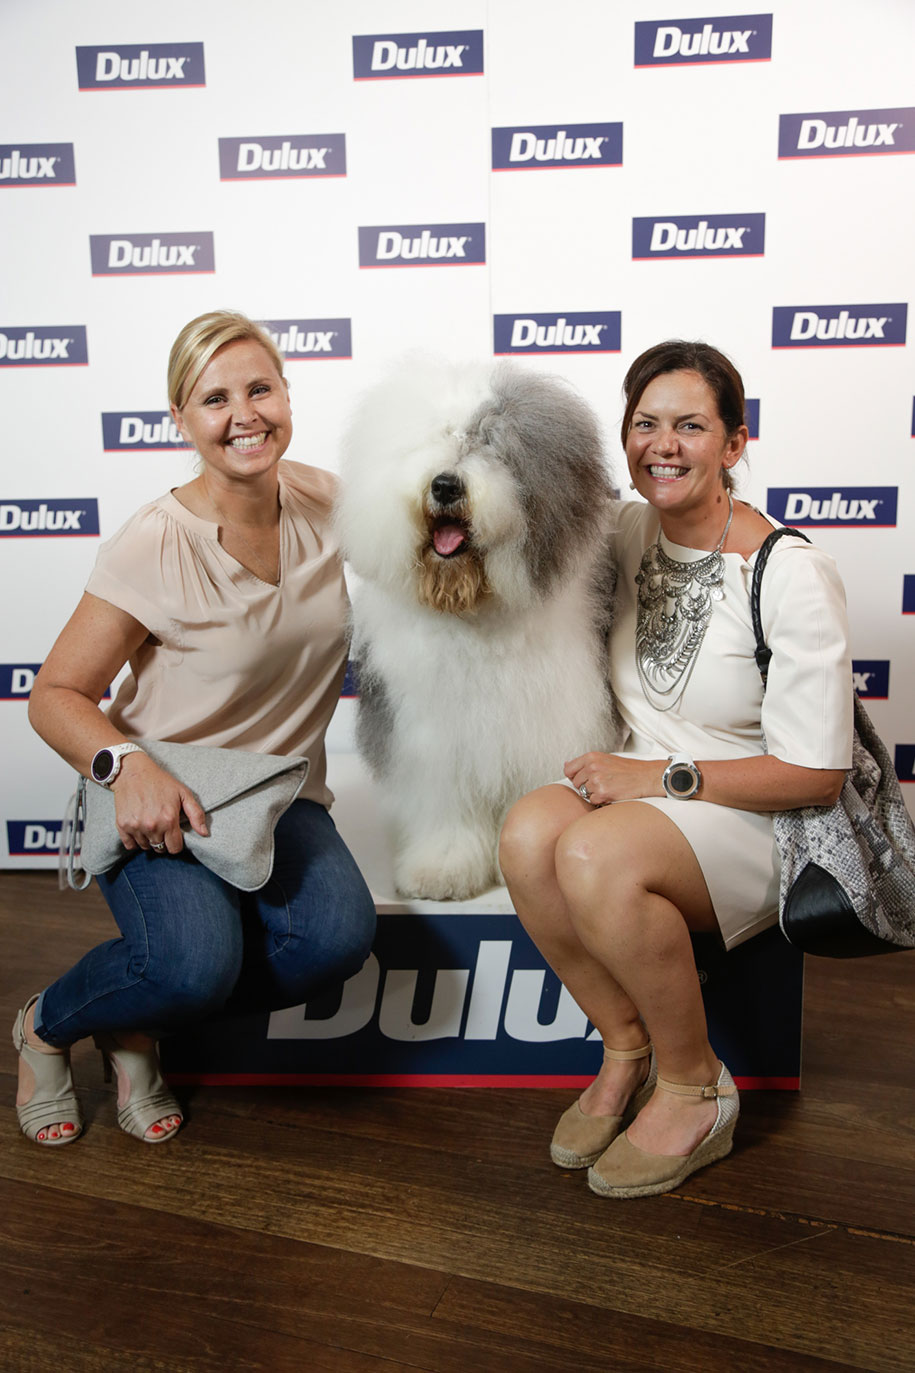 2016-Dulux-Colour-Launch-Sydney-©-SaltyDingo-2016-11575